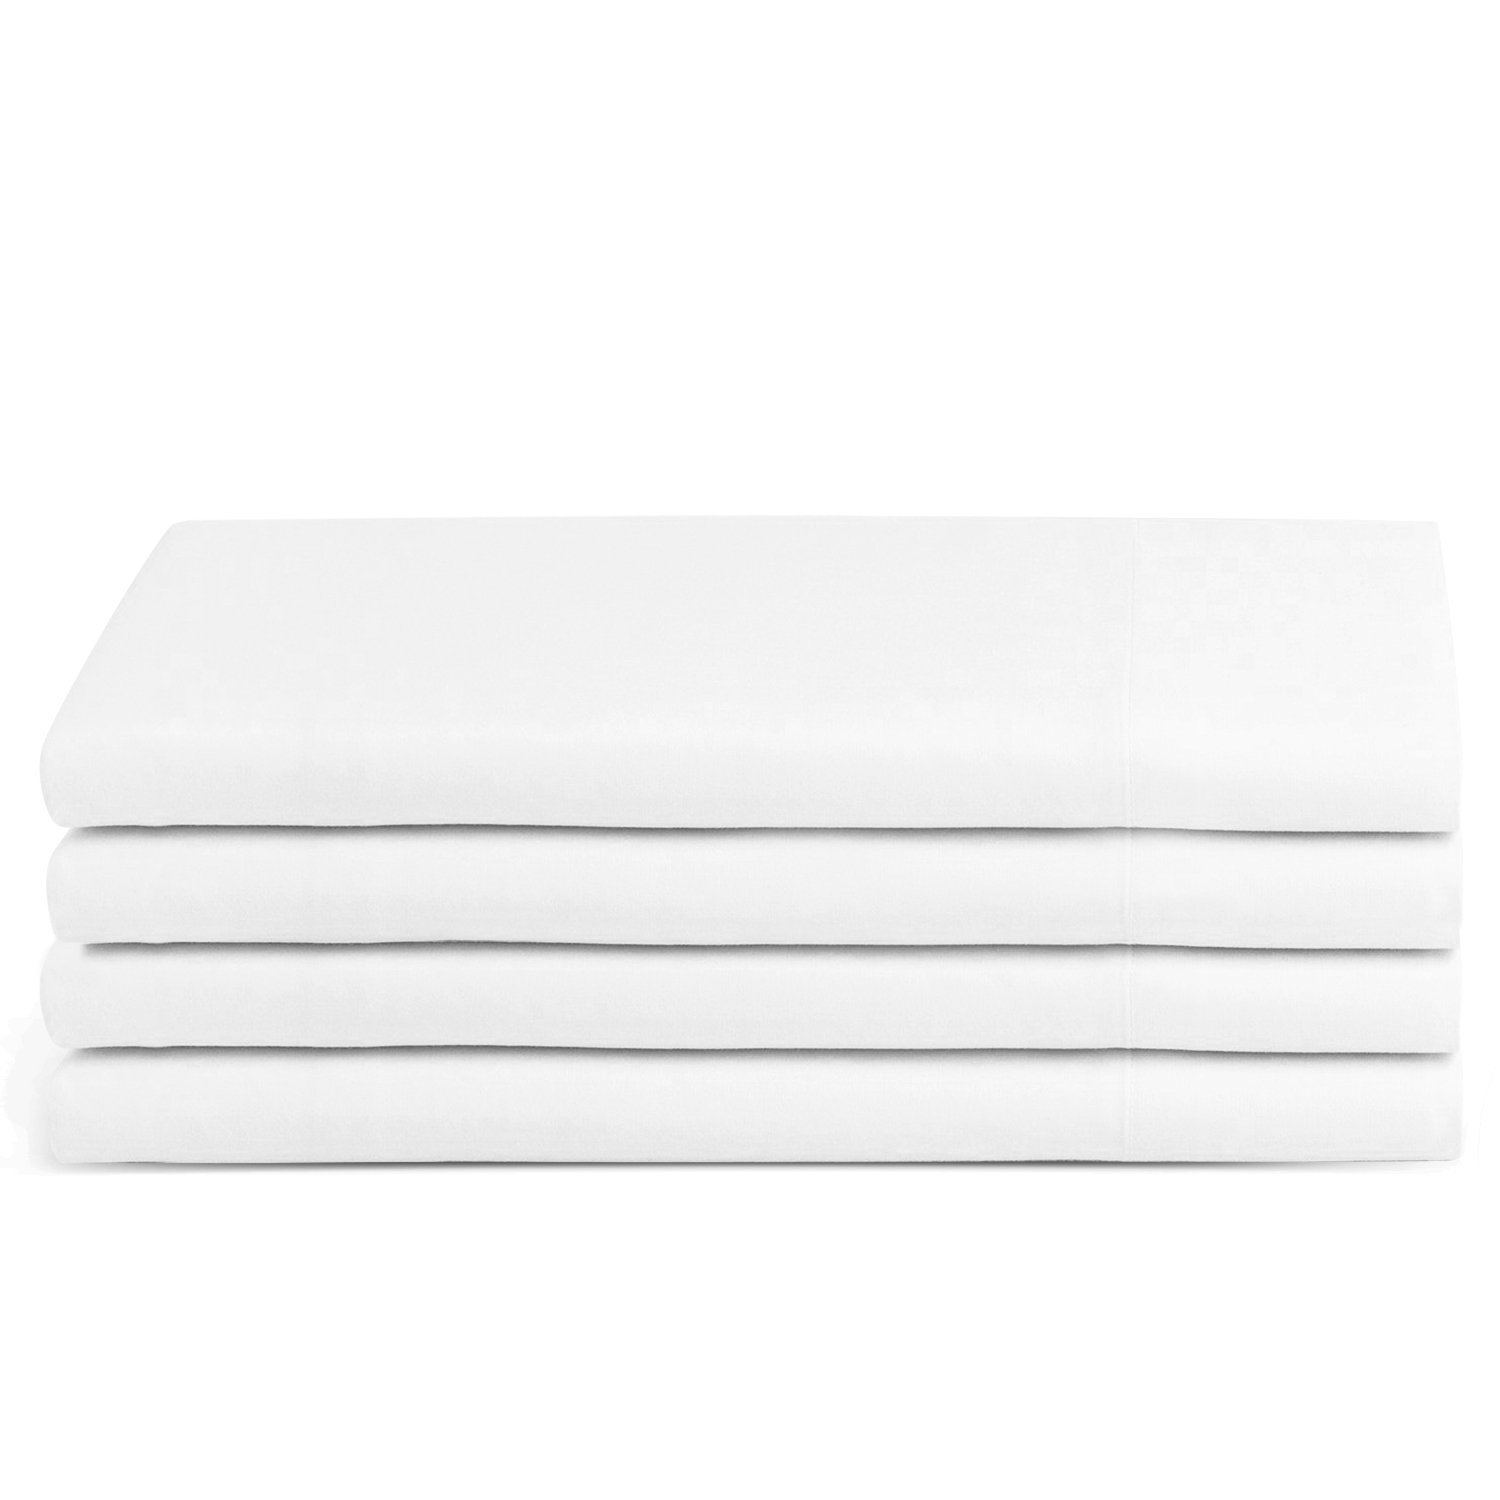 Beckham Hotel Collection Luxury Pillow Case (4 Pack) - Soft-Brushed Microfiber, Hypoallergenic, and Wrinkle Resistant - Standard/Queen - White